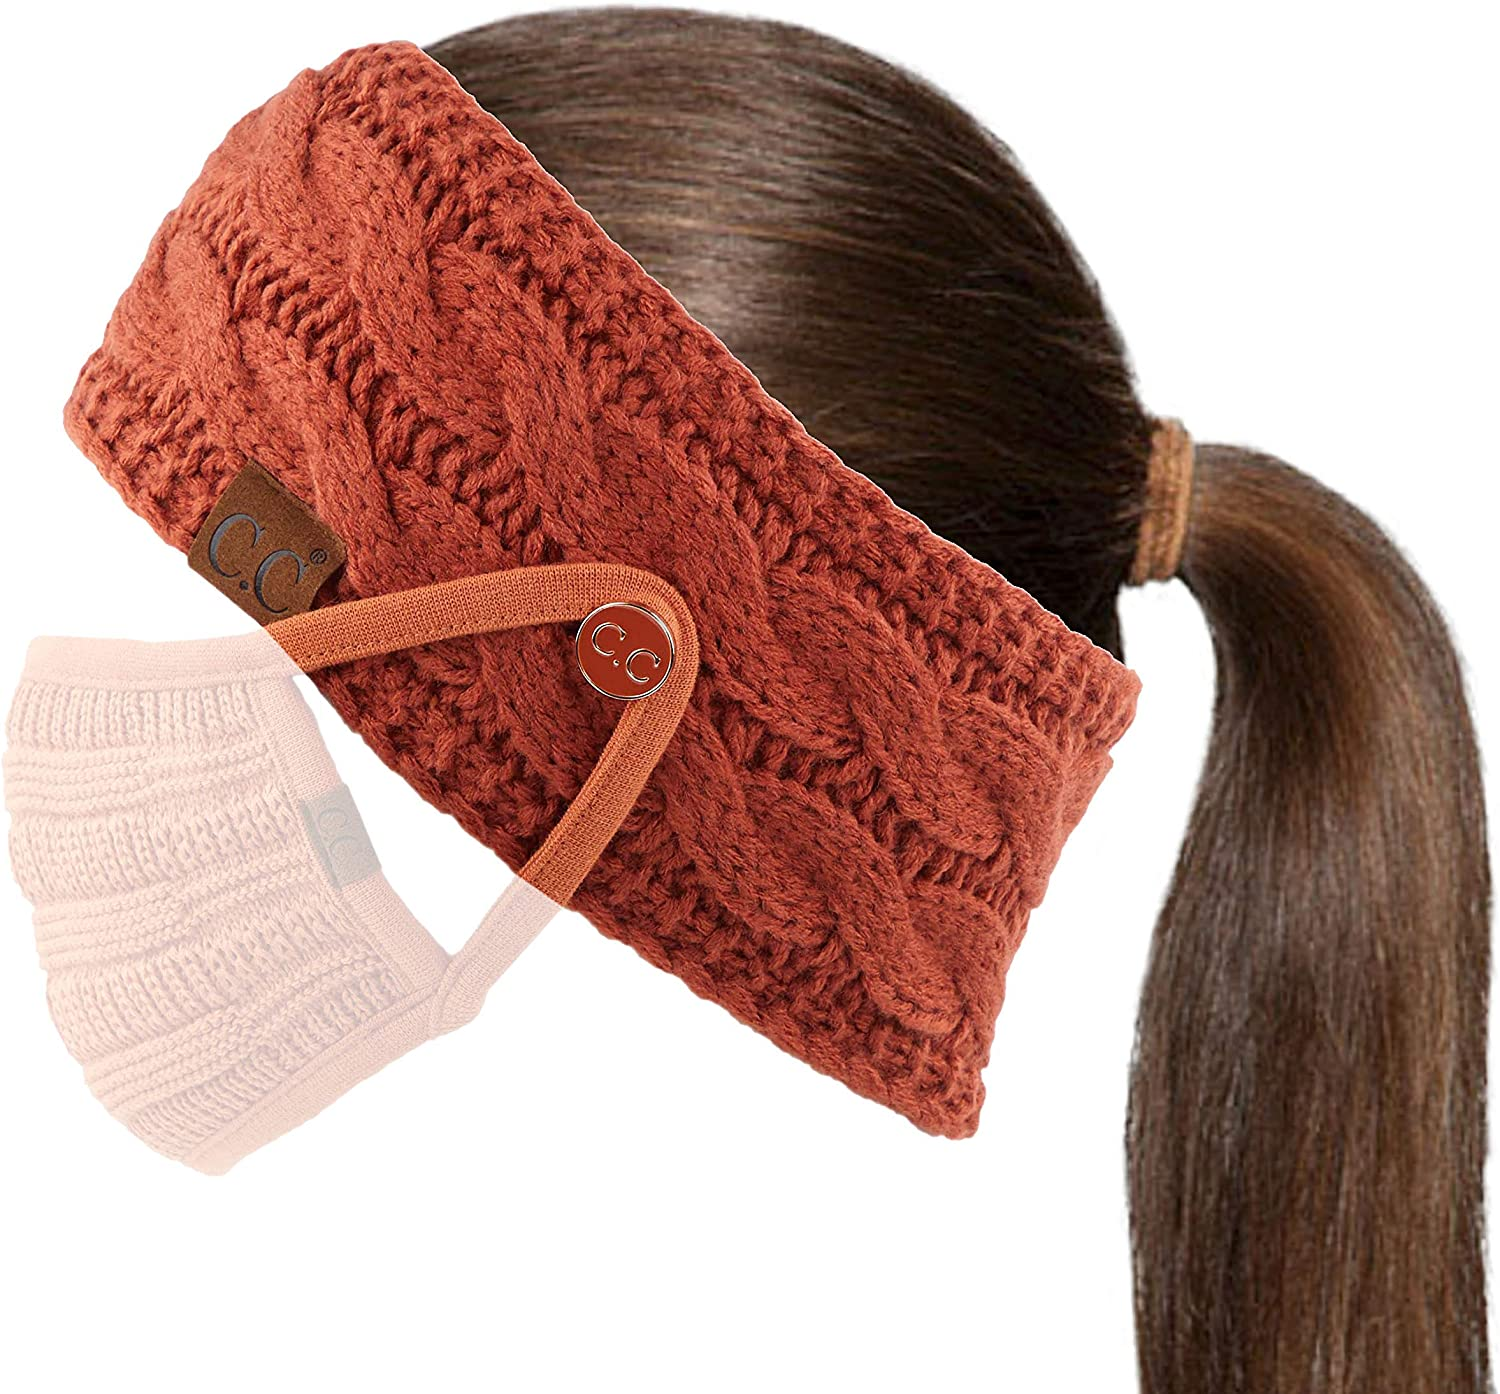 C.C Winter Fuzzy Fleece Lined Headband Ea Wholesale Knitted Headwrap Thick Max 83% OFF